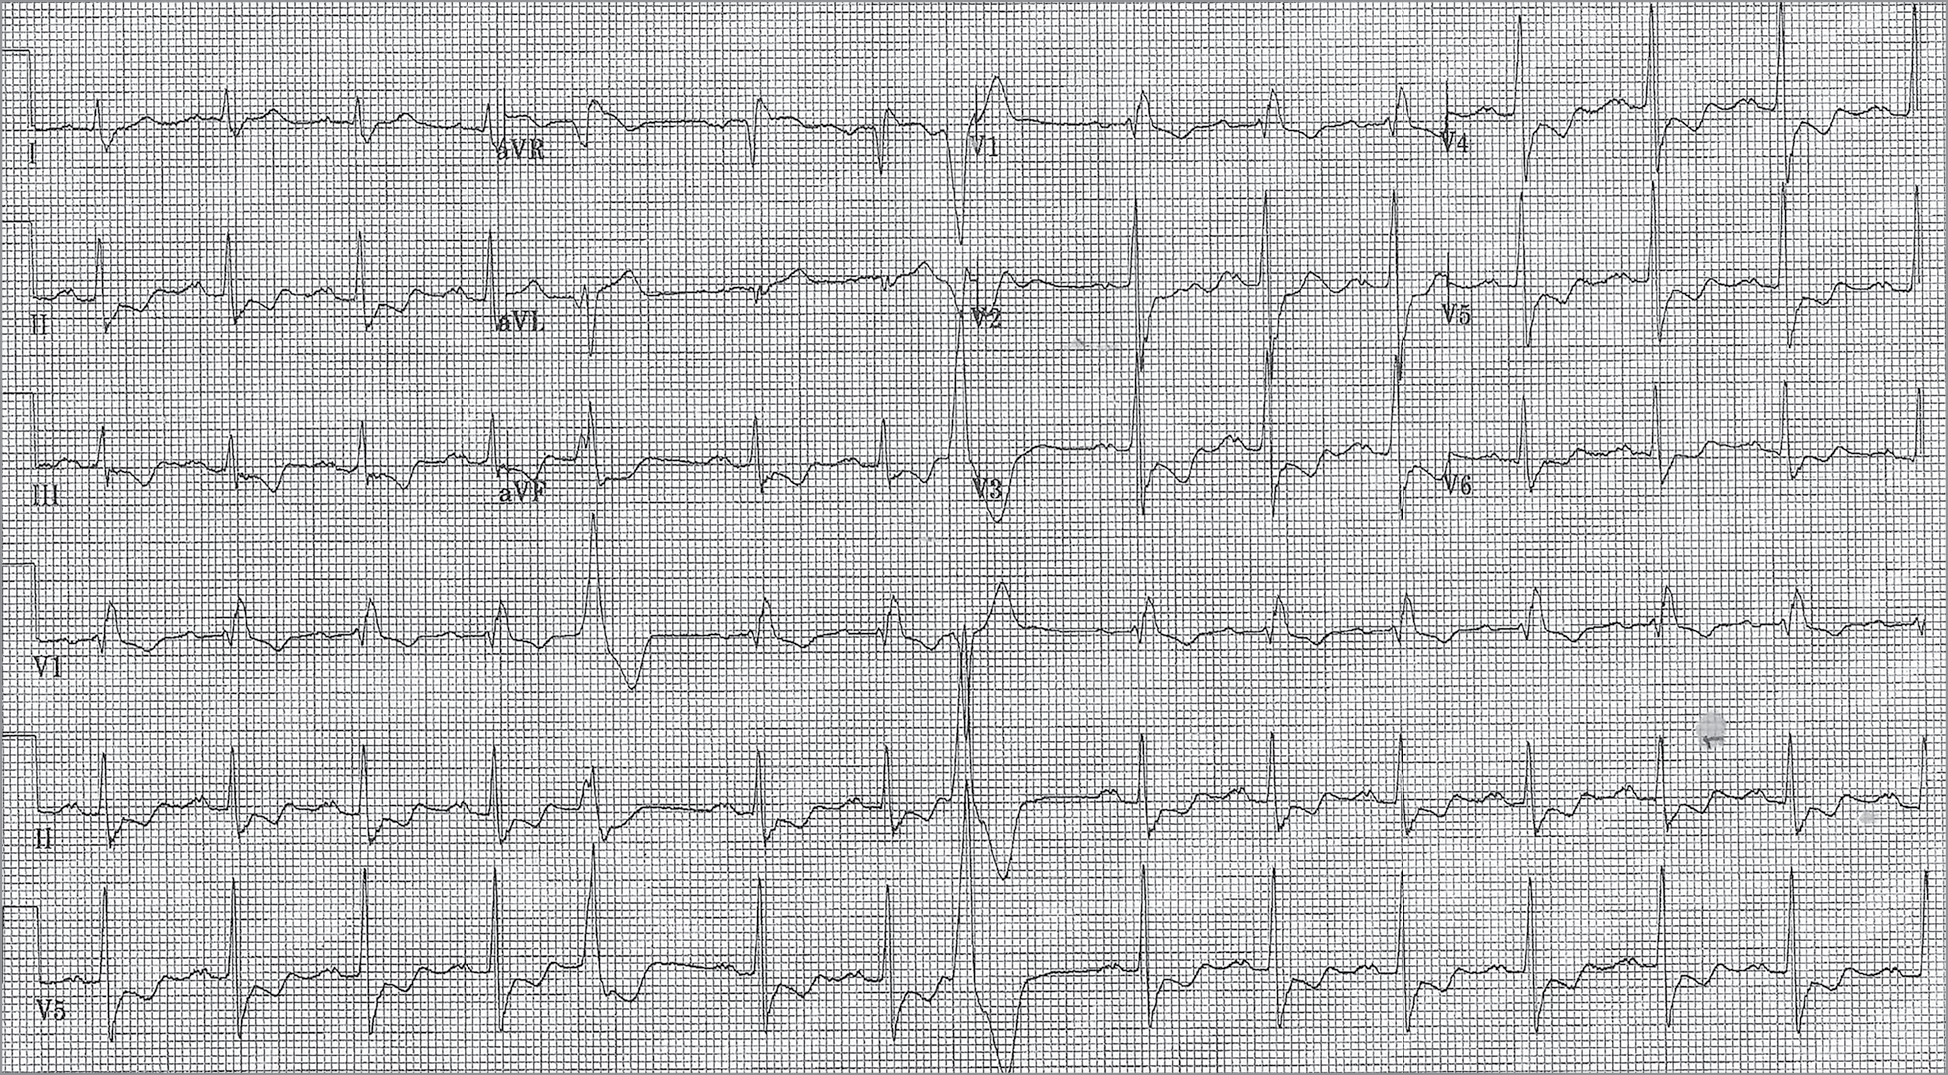 An Elderly Patient With Palpitation and a Negative Nuclear